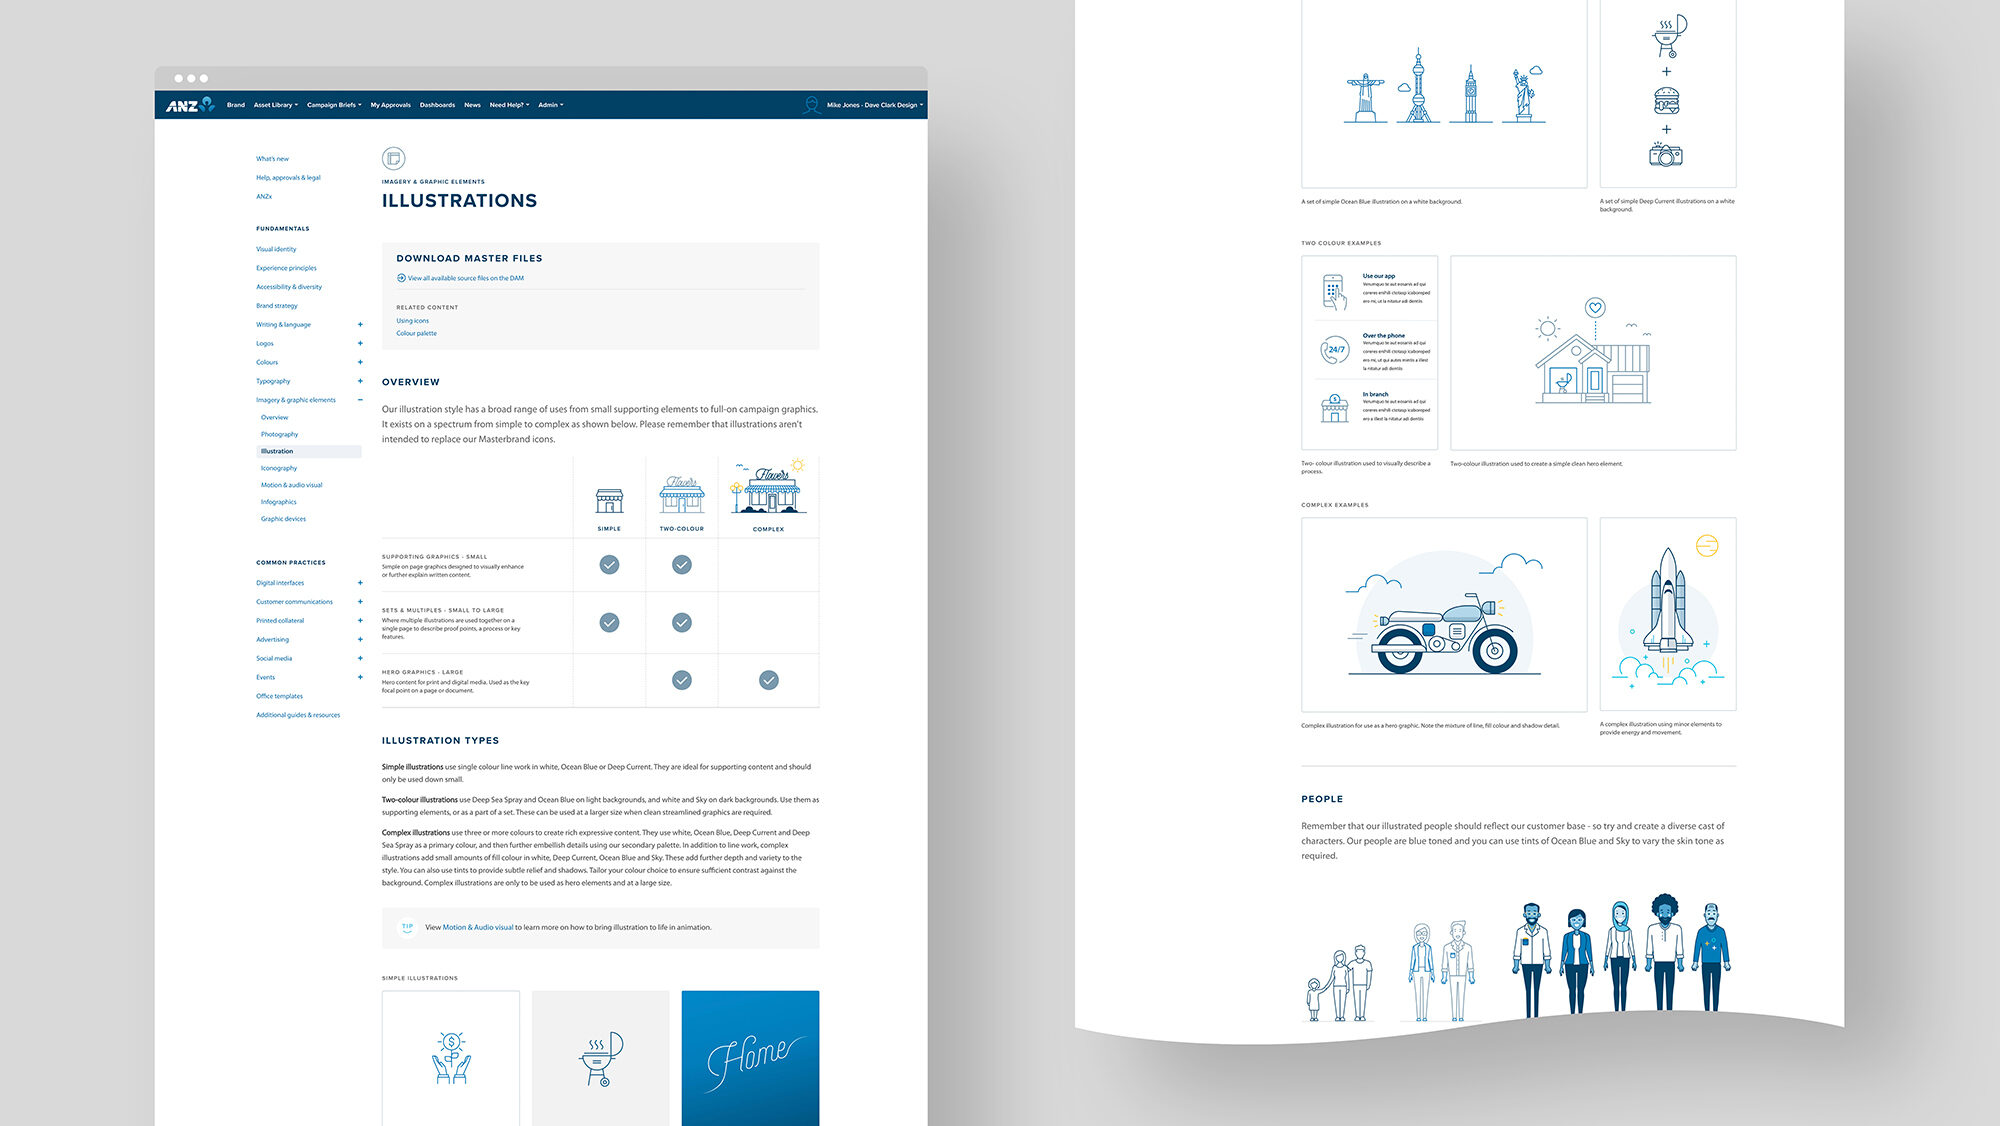 ANZ Illustration Web guidelines